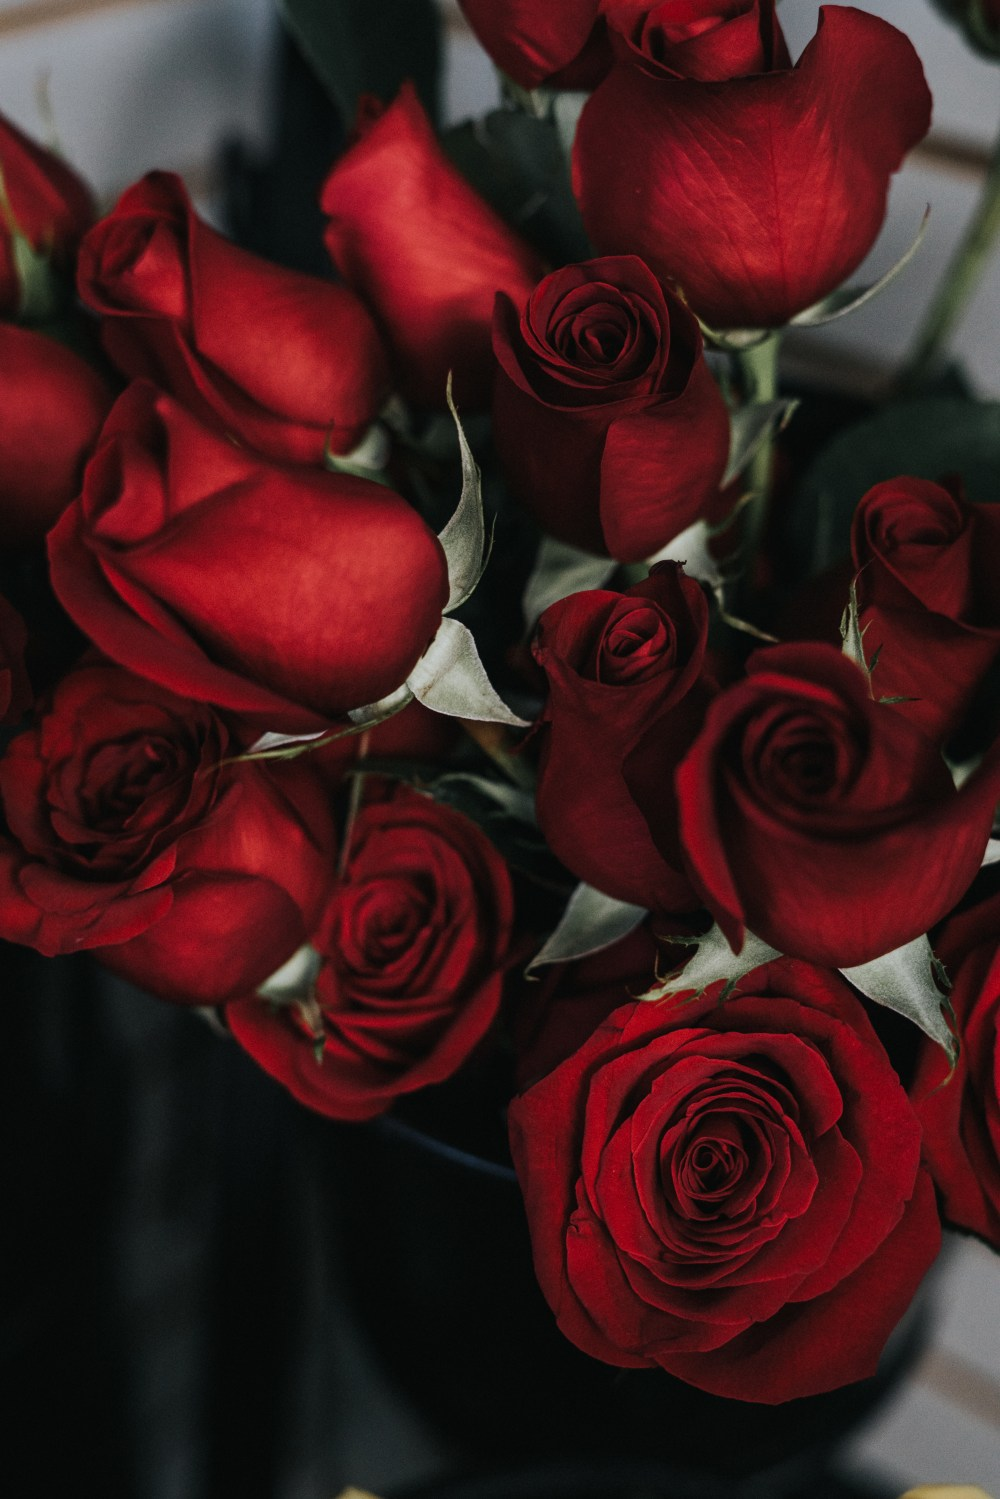 roses hd photo by